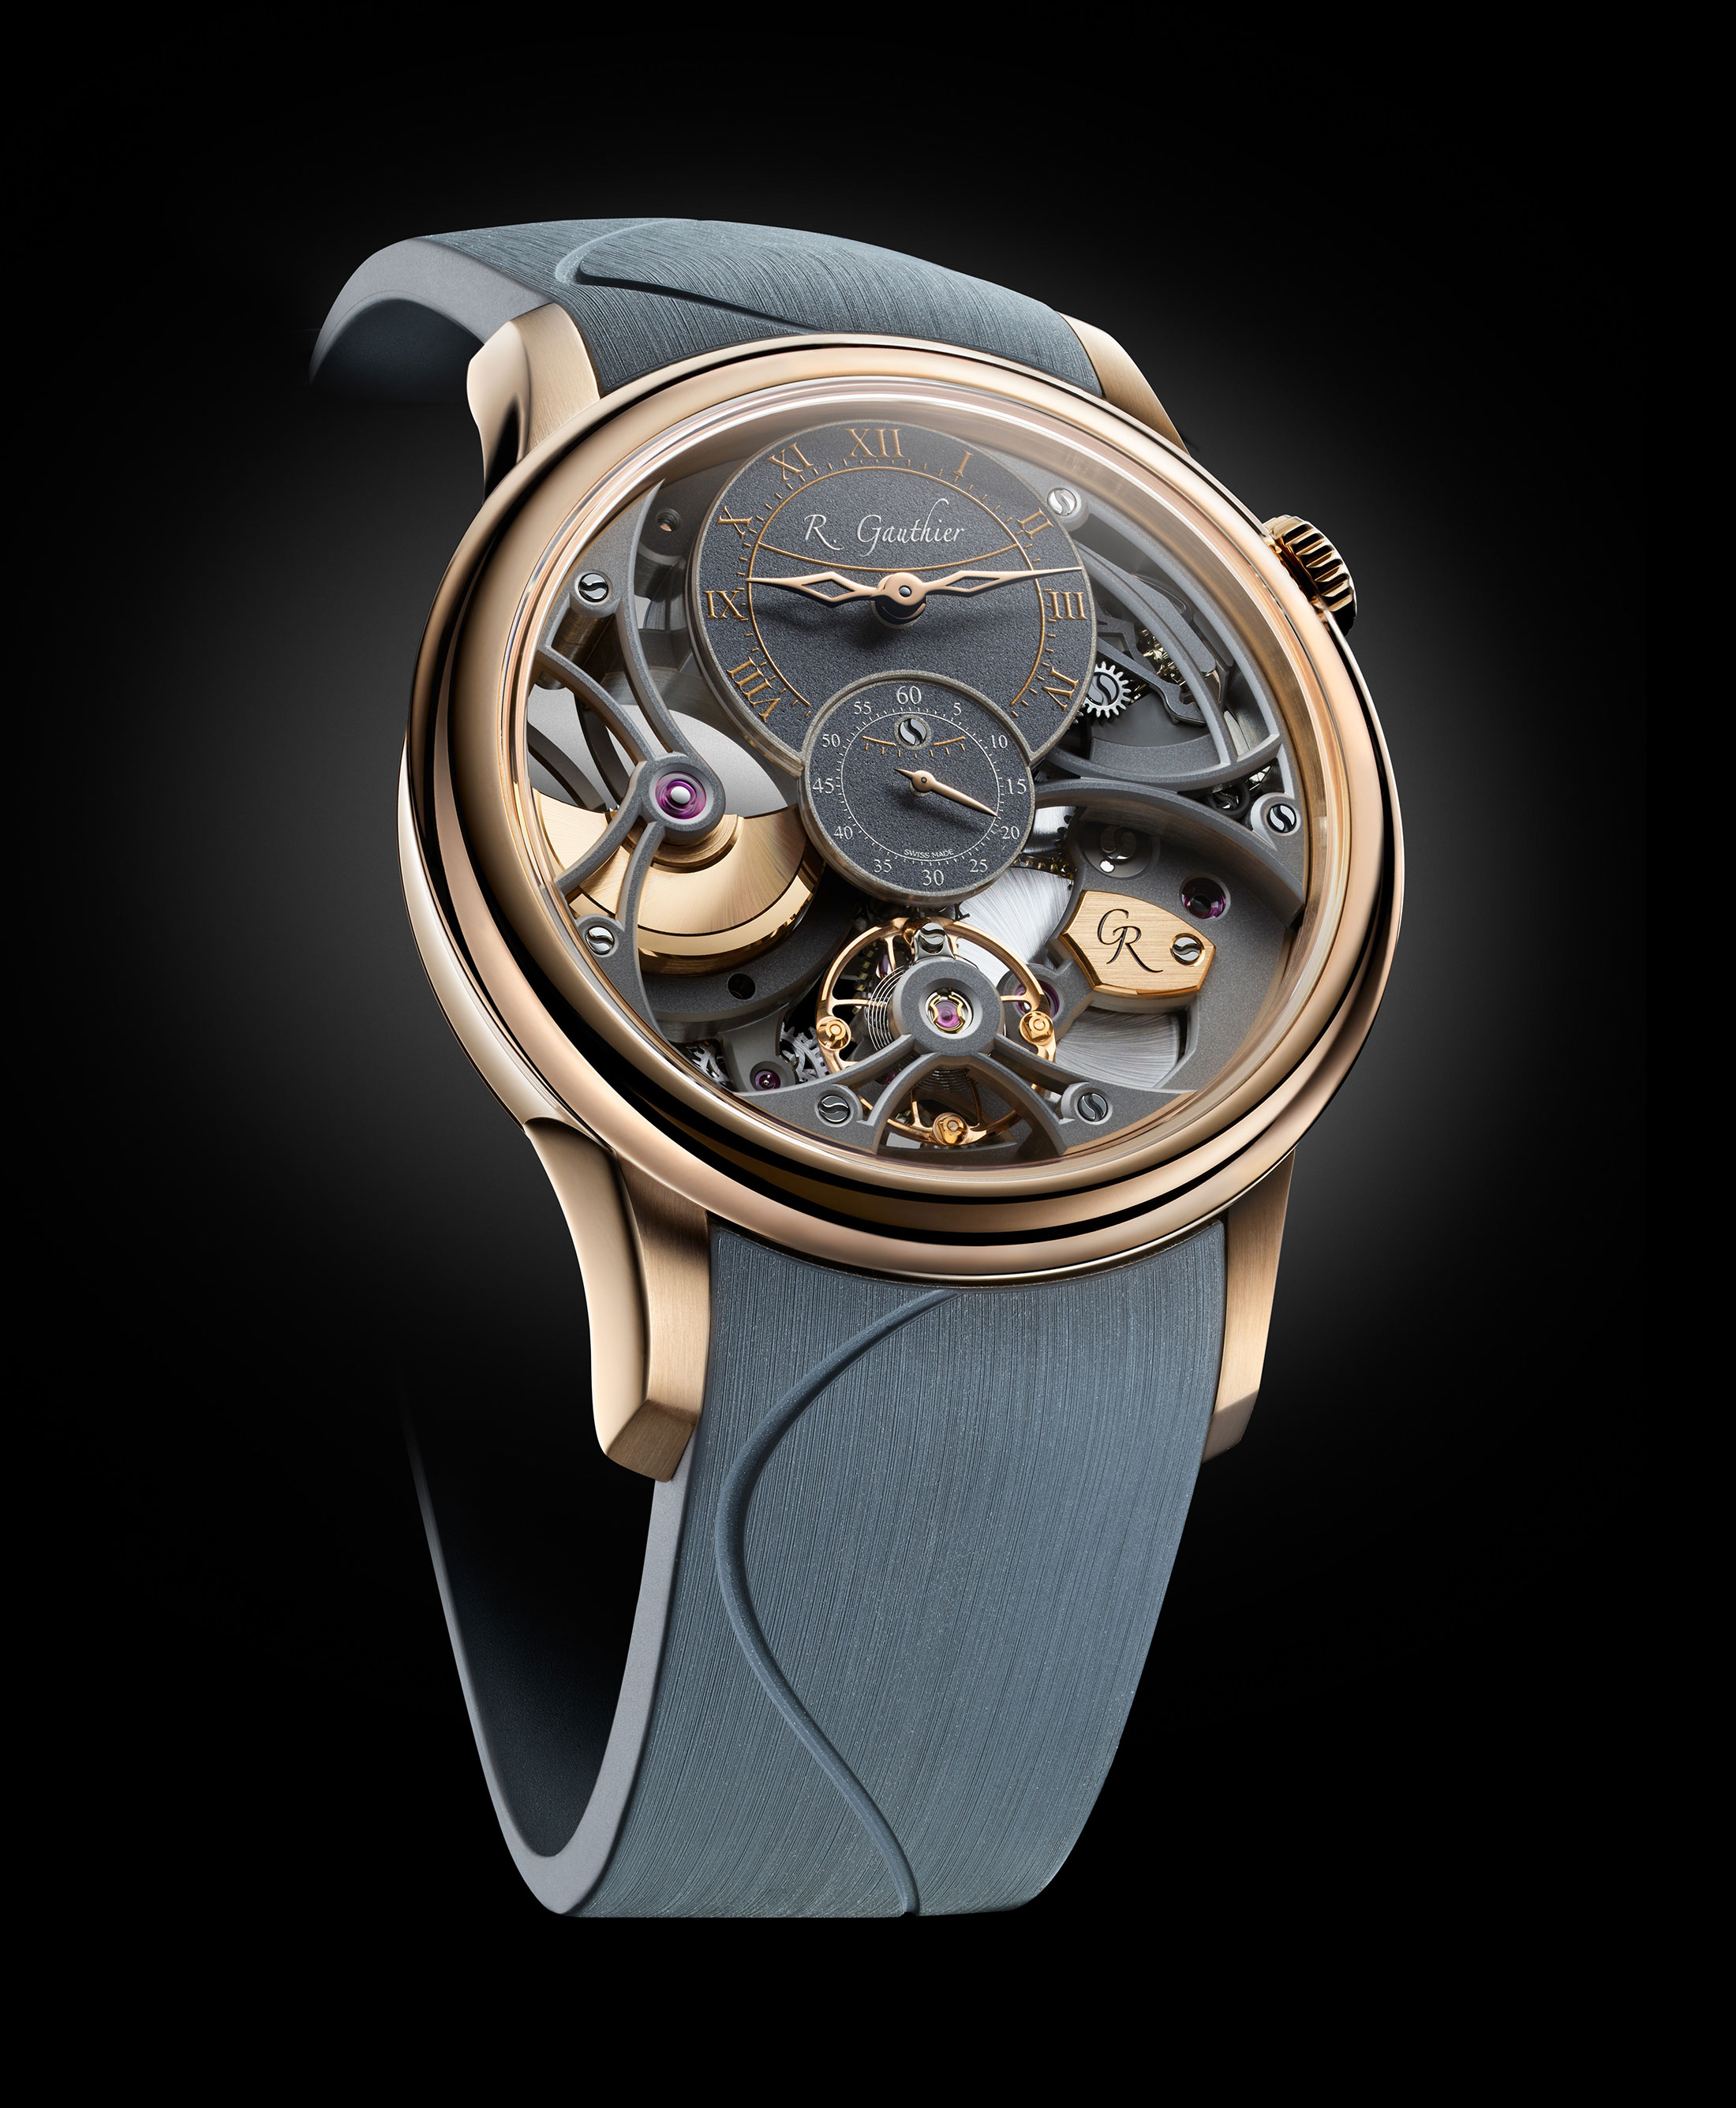 Romain Gauthier: The Insight Micro-Rotor Squelette